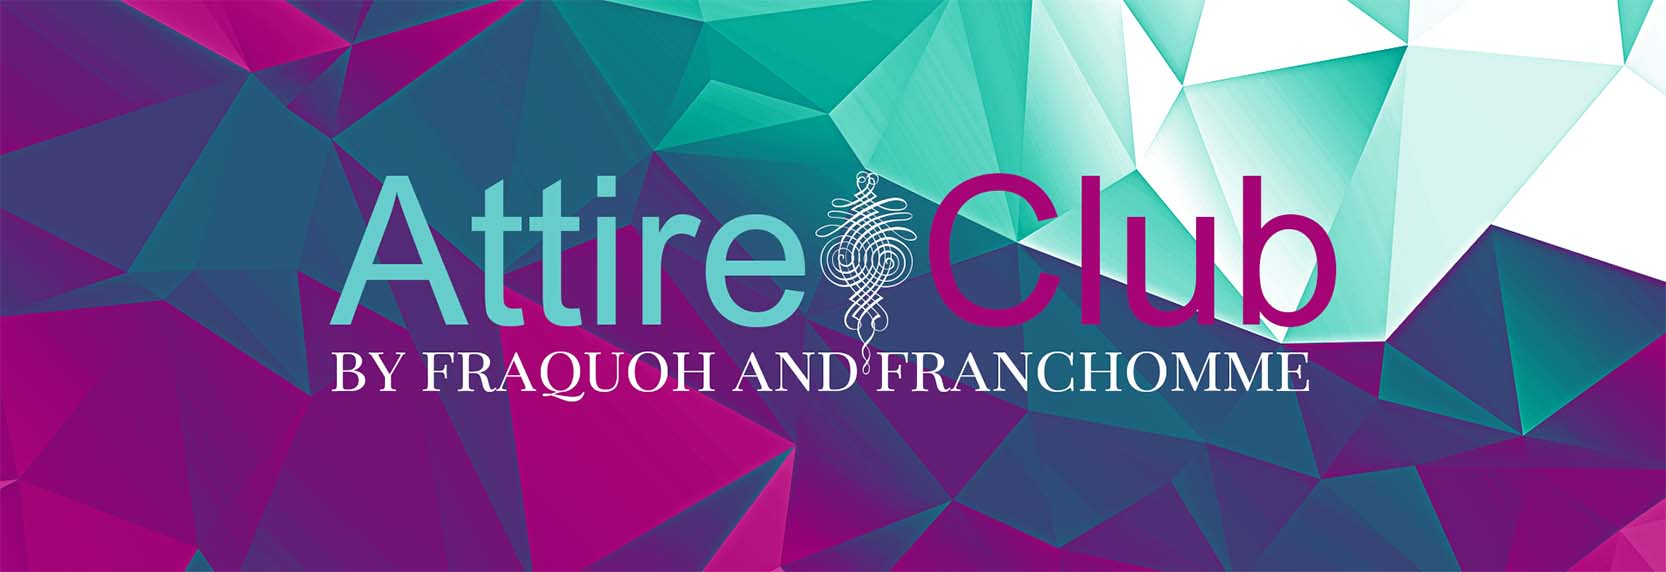 Attire Club by Fraquoh and Franchomme